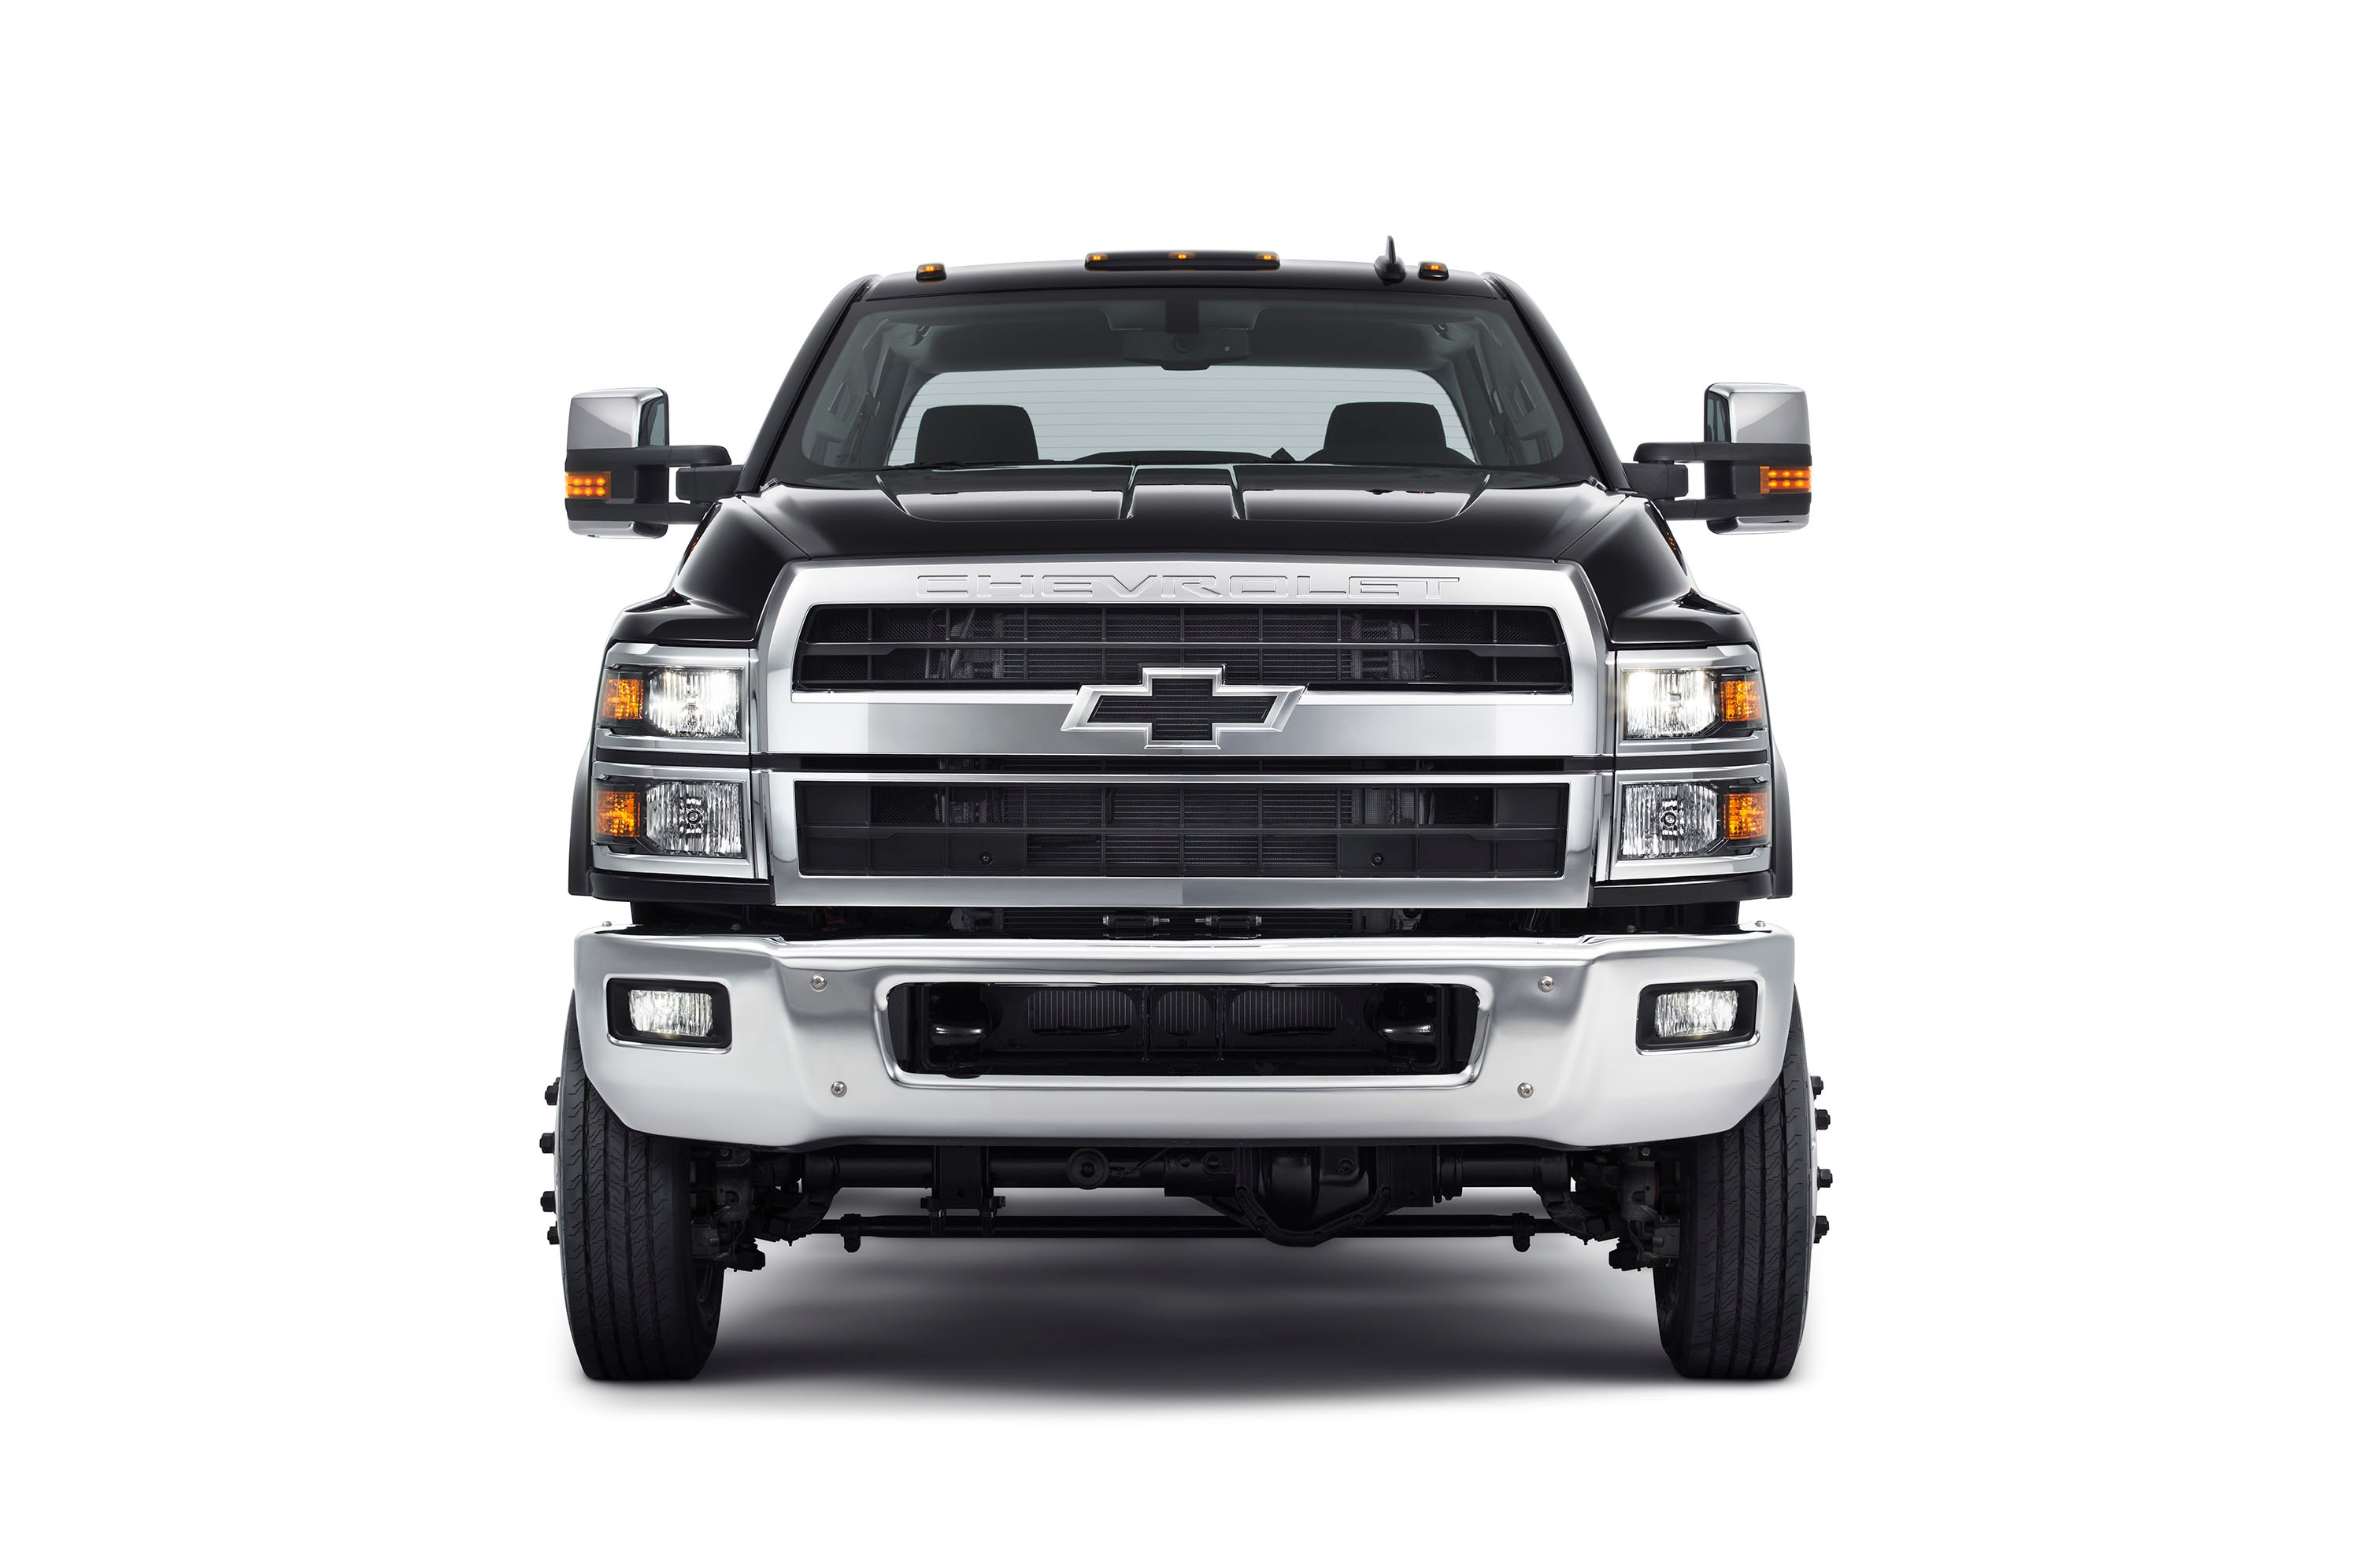 Chevrolet Returns to Medium-Duty Class With Monster-Duty Chassis Cab